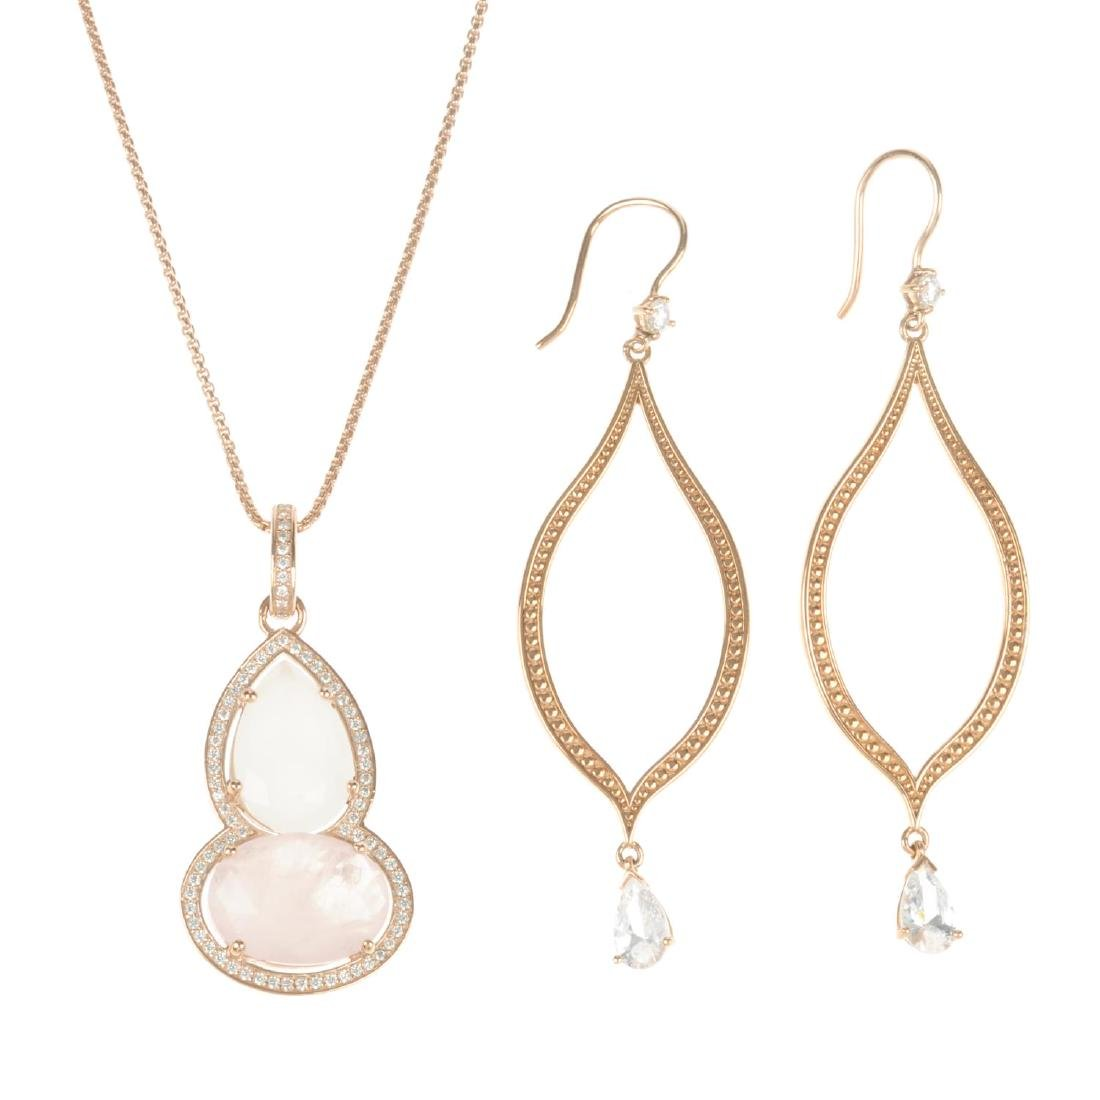 THOMAS SABO - four items of jewellery. To include a